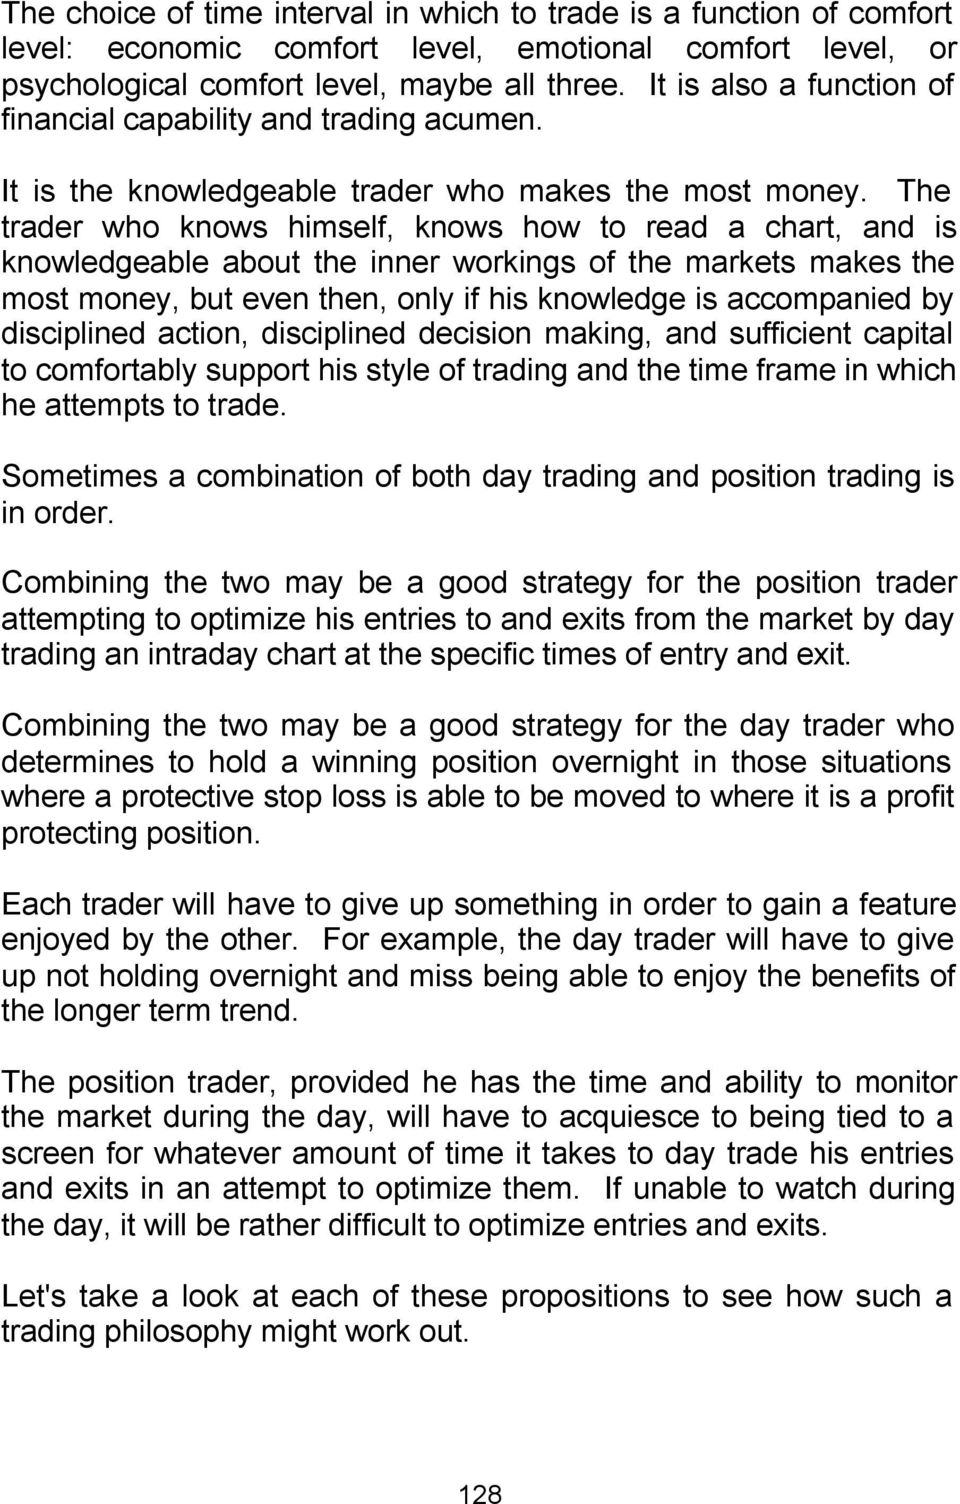 The trader who knows himself, knows how to read a chart, and is knowledgeable about the inner workings of the markets makes the most money, but even then, only if his knowledge is accompanied by